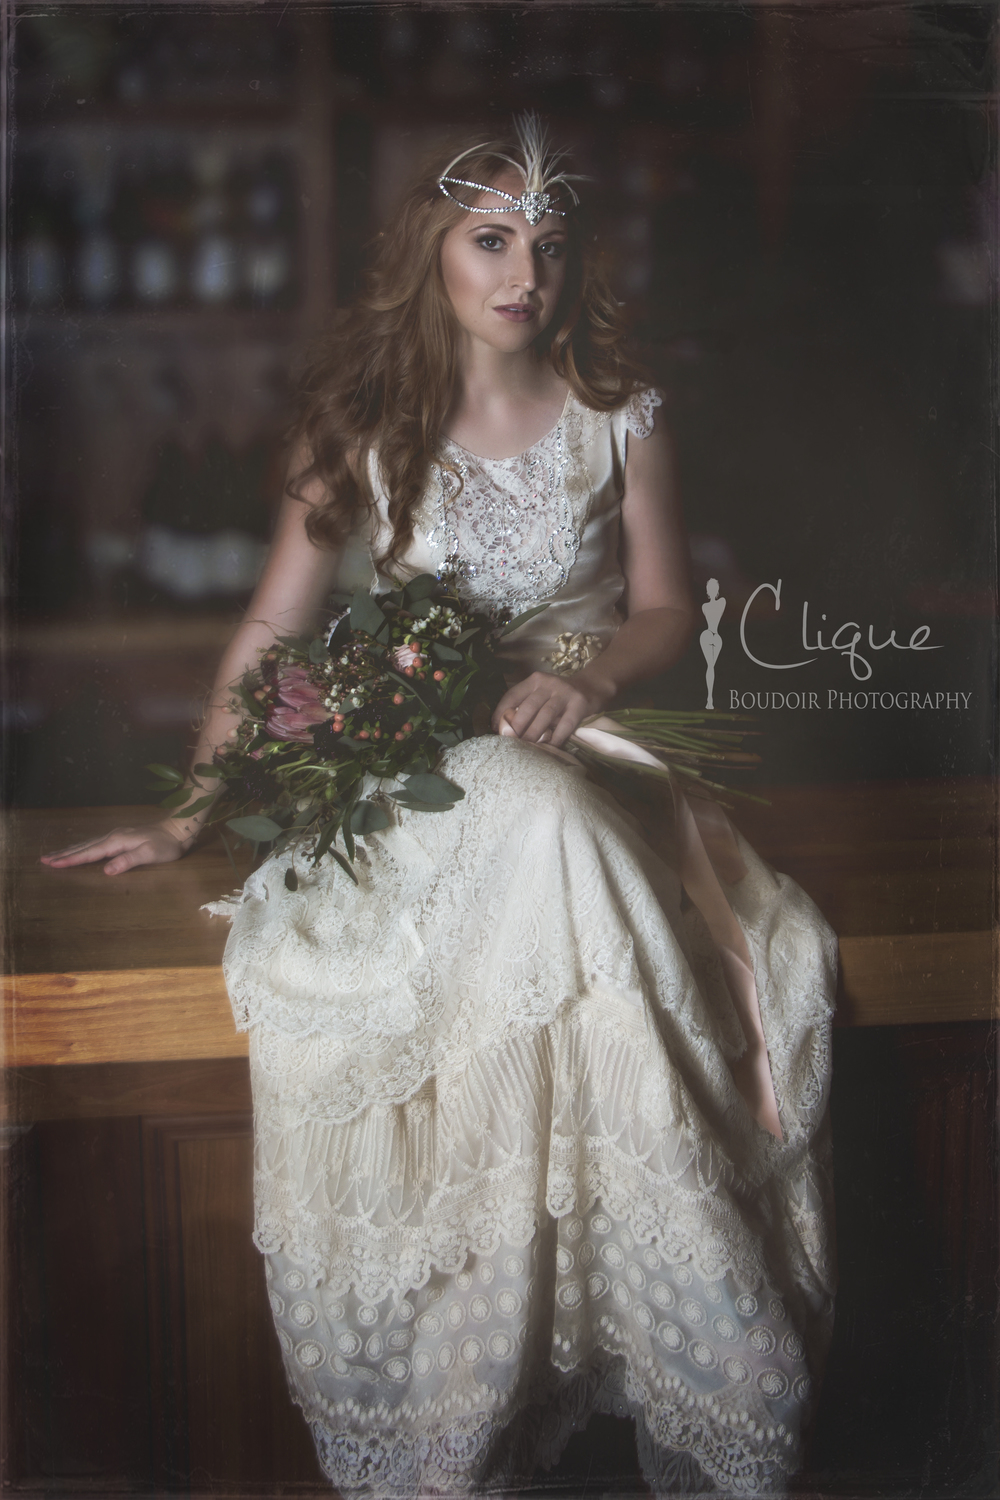 Vintage bridal gown on a bar